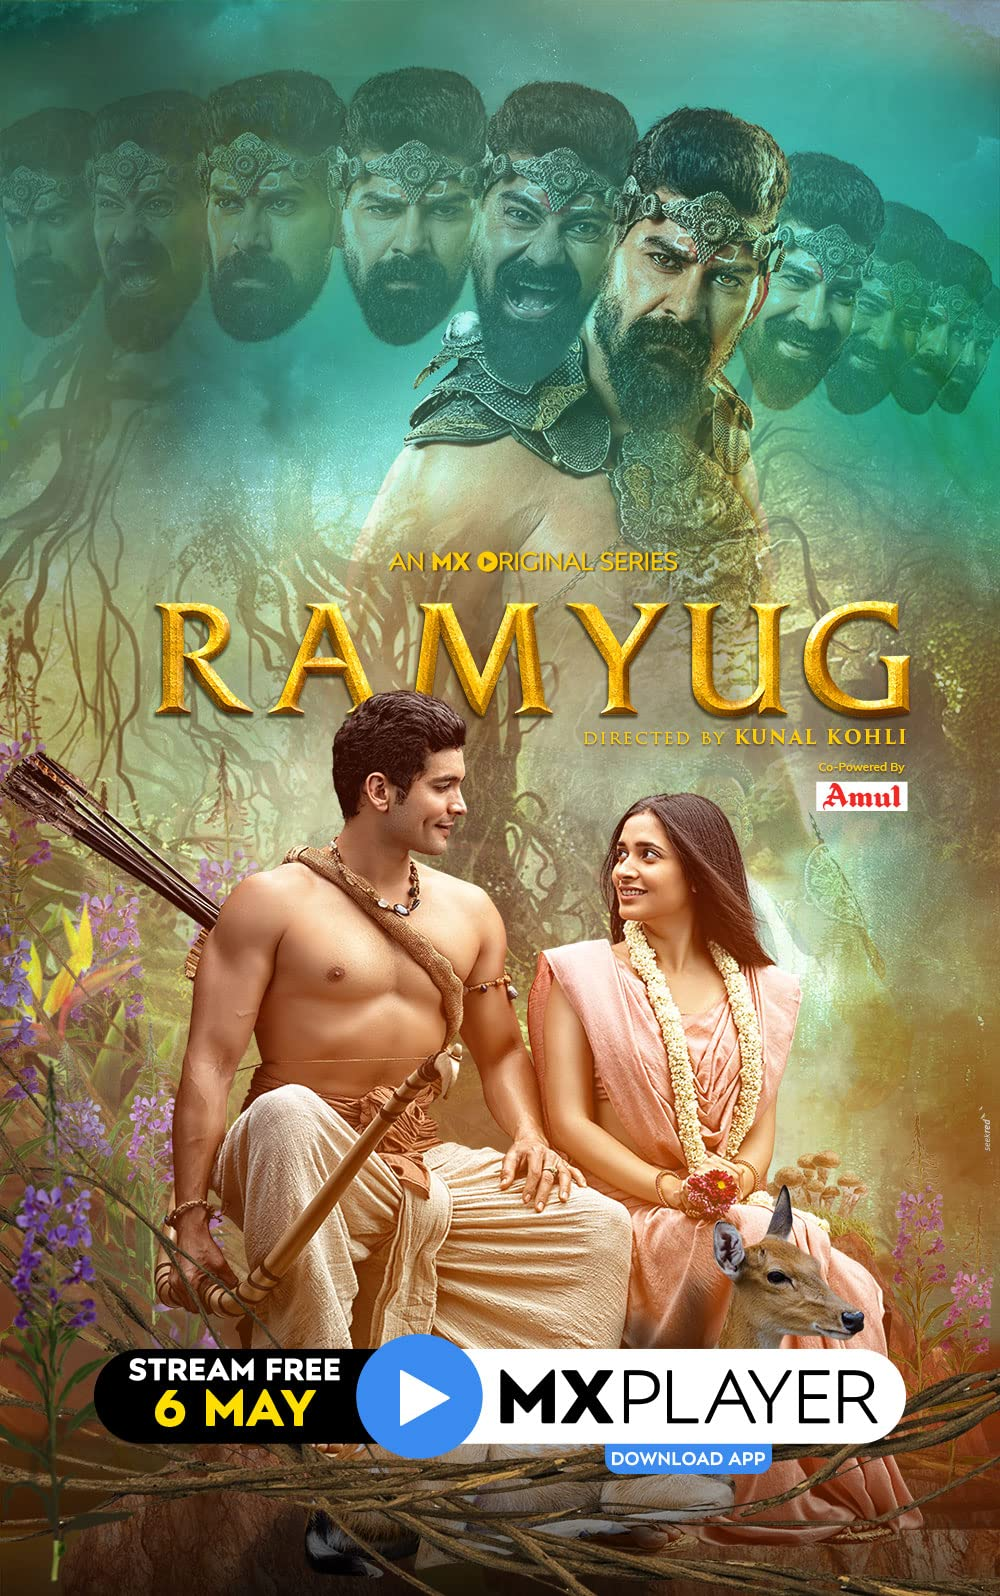 Ramyug 2021 S01 Hindi MX Original Complete Web Series 480p HDRip 950MB x264 AAC